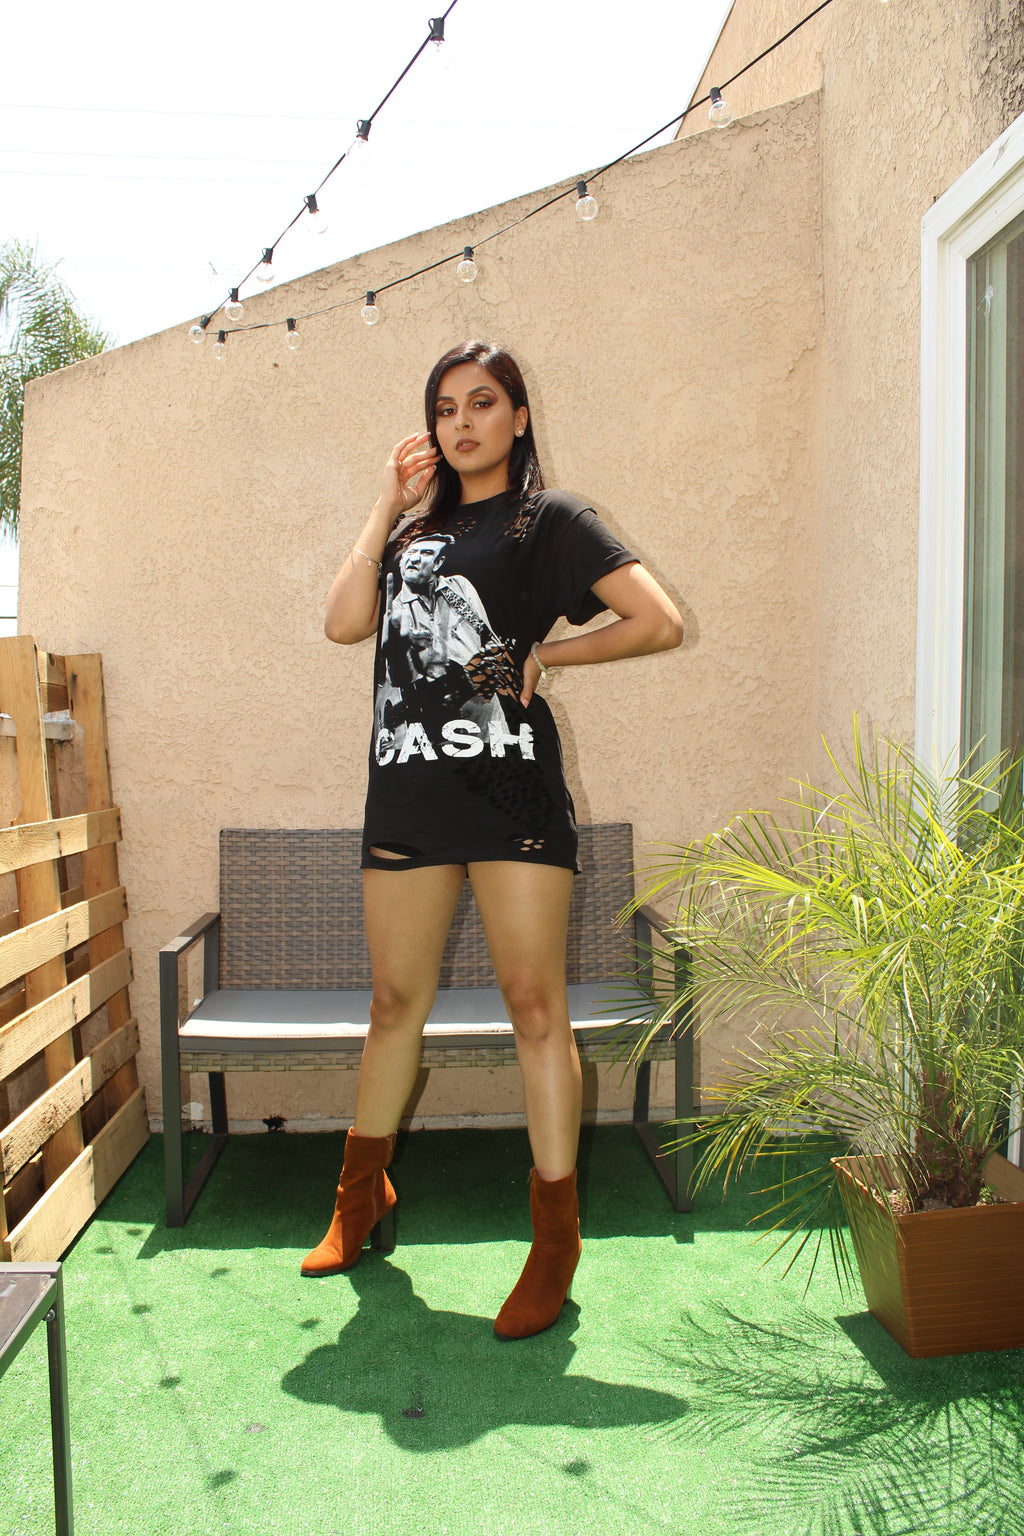 Johnny CASH Distressed T-Shirt/Dress